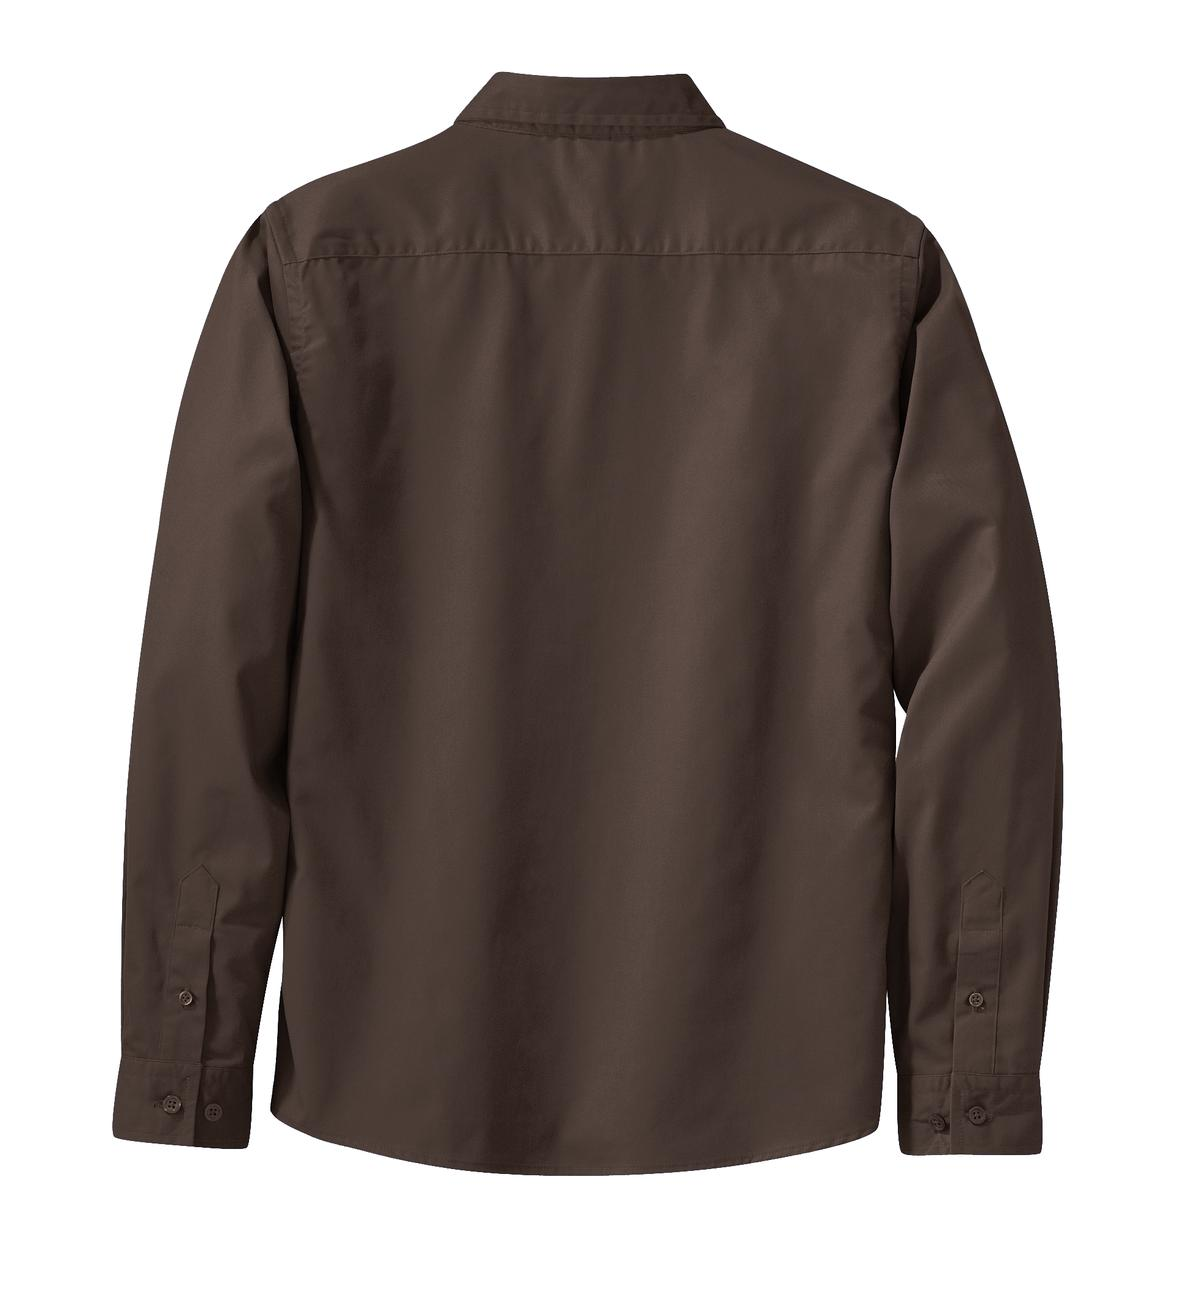 Mafoose Women's Long Sleeve Easy Care Shirt Coffee Bean/Light Stone-Back